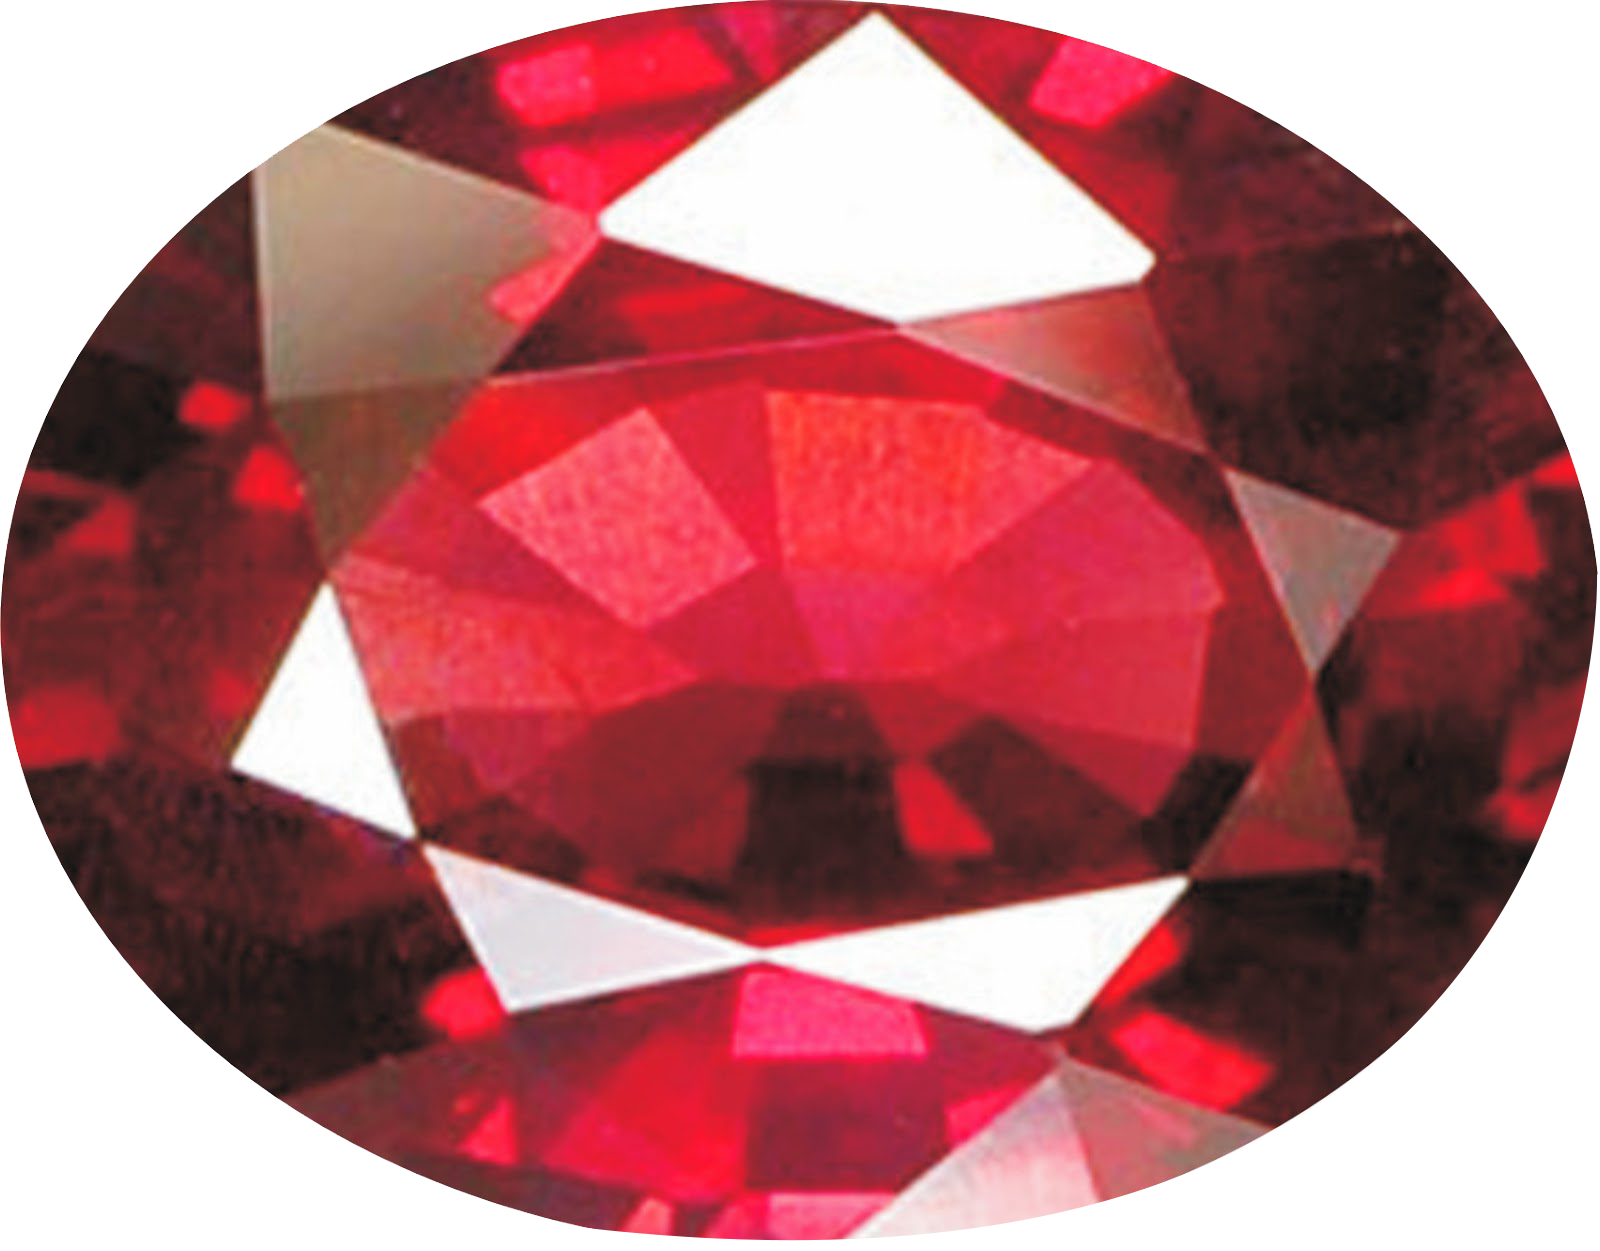 Ruby Stone Png Transparent Image  2740